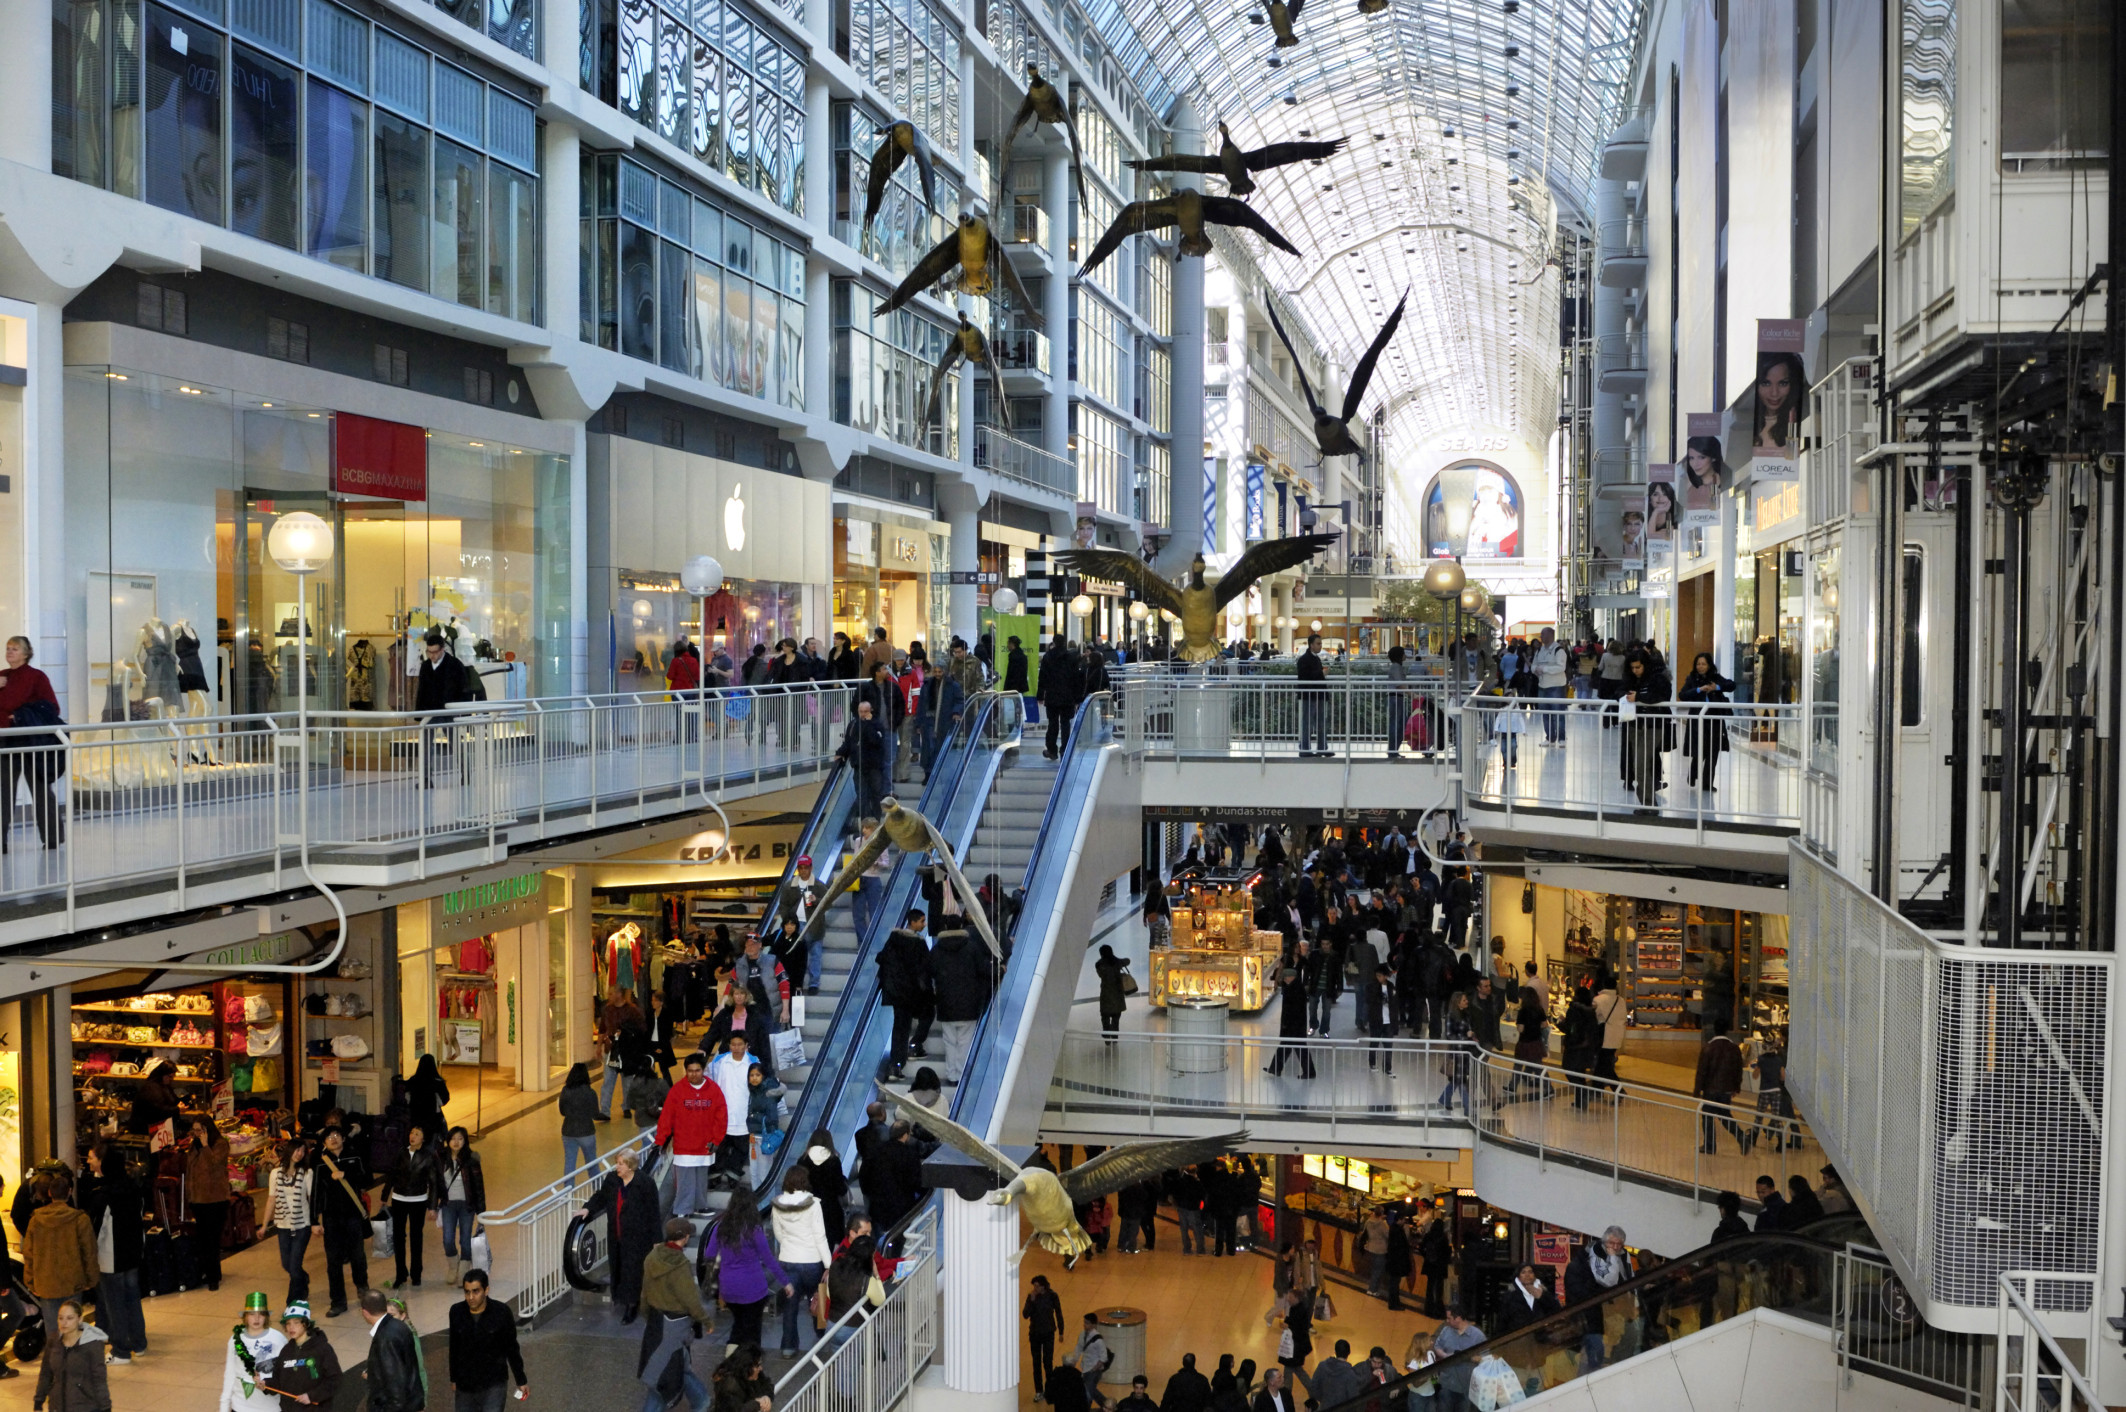 The Toronto Eaton Centre (corporately styled as the CF Toronto Eaton Centre since September , and commonly referred to simply as the Eaton Centre) is a shopping mall and office complex in Downtown Toronto, Ontario, Canada.